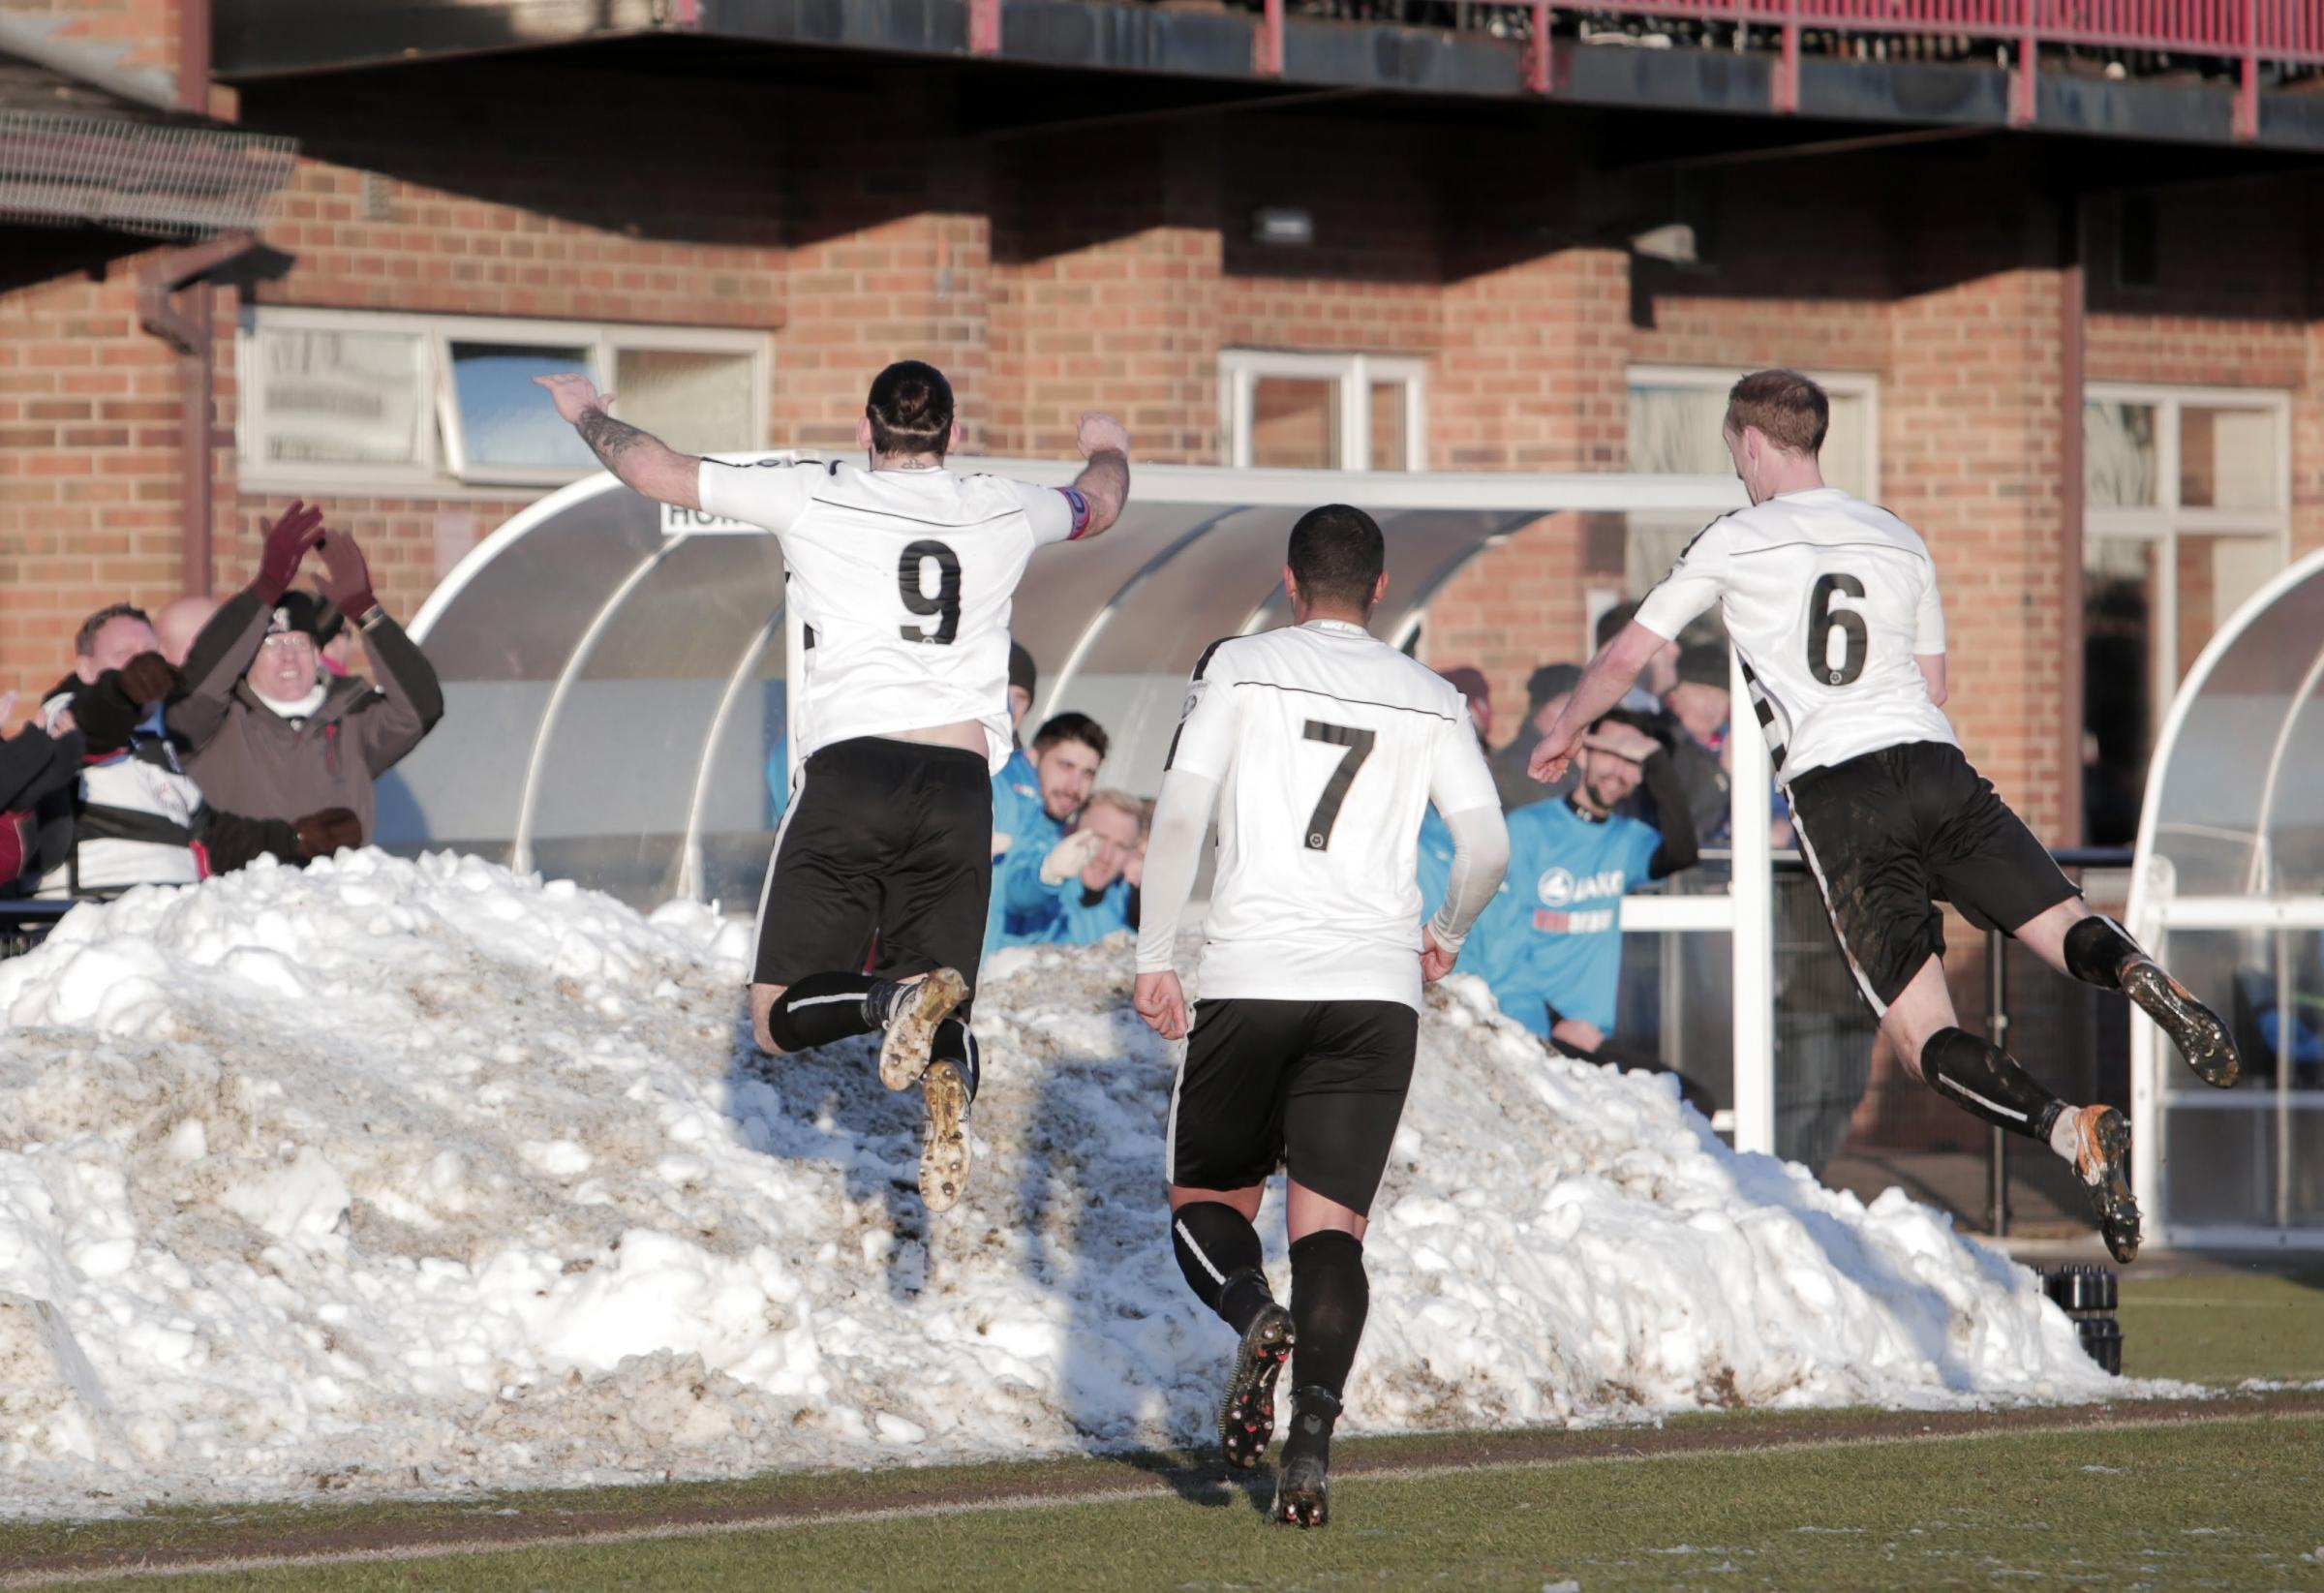 CASH BONUS: Reece Styche jumps into the snow at Blackwell Meadows